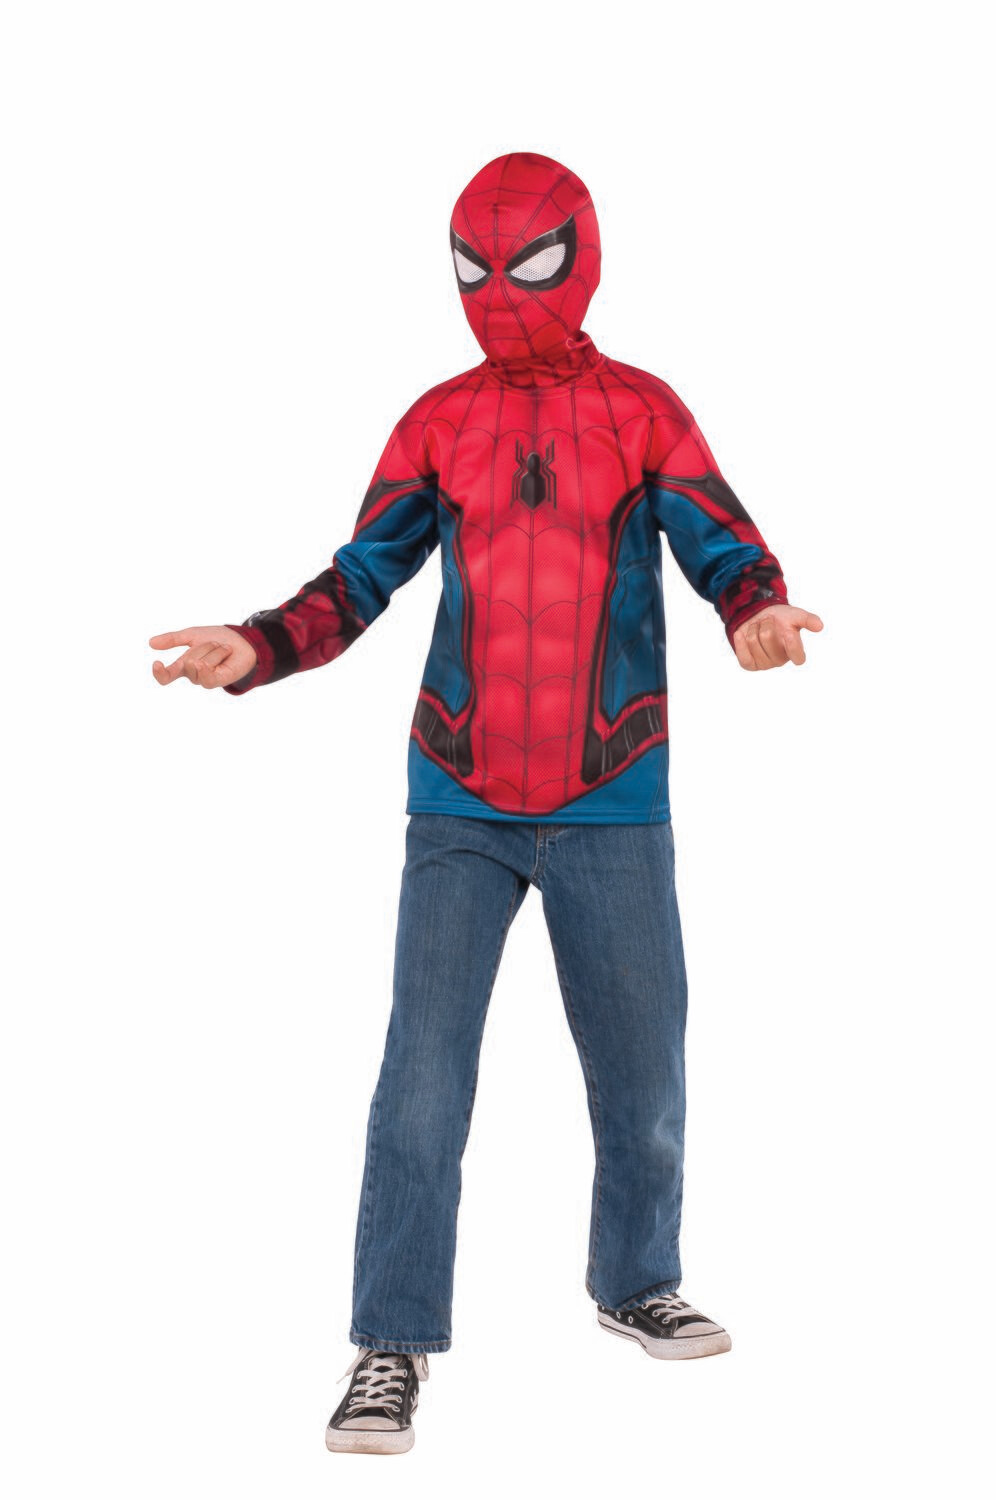 Spider-Man: Far From Home Spider-Man Red/Blue Suit Costume Top - Kids